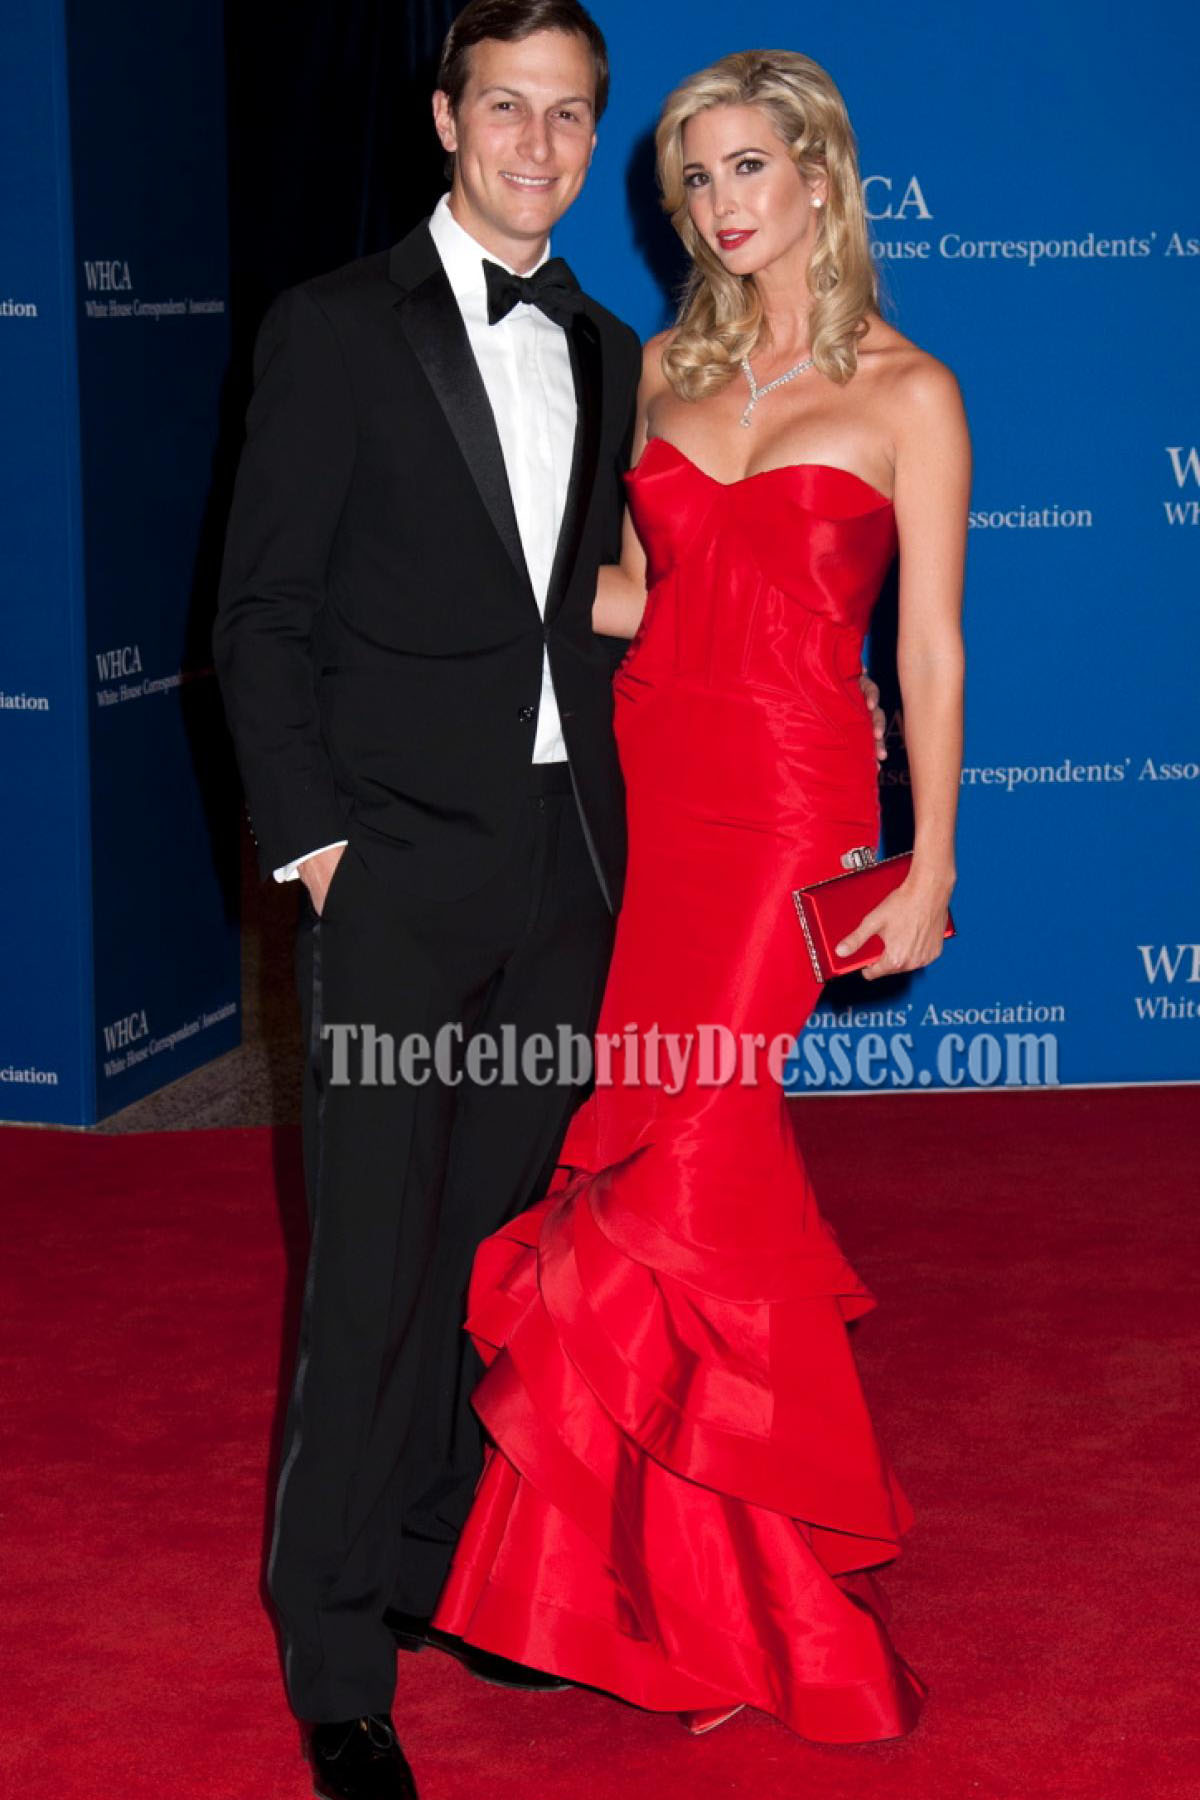 Ivanka Trump Red Mermaid Formal Dress 2015 White House Correspondents'  Association Dinner - TheCelebrityDresses